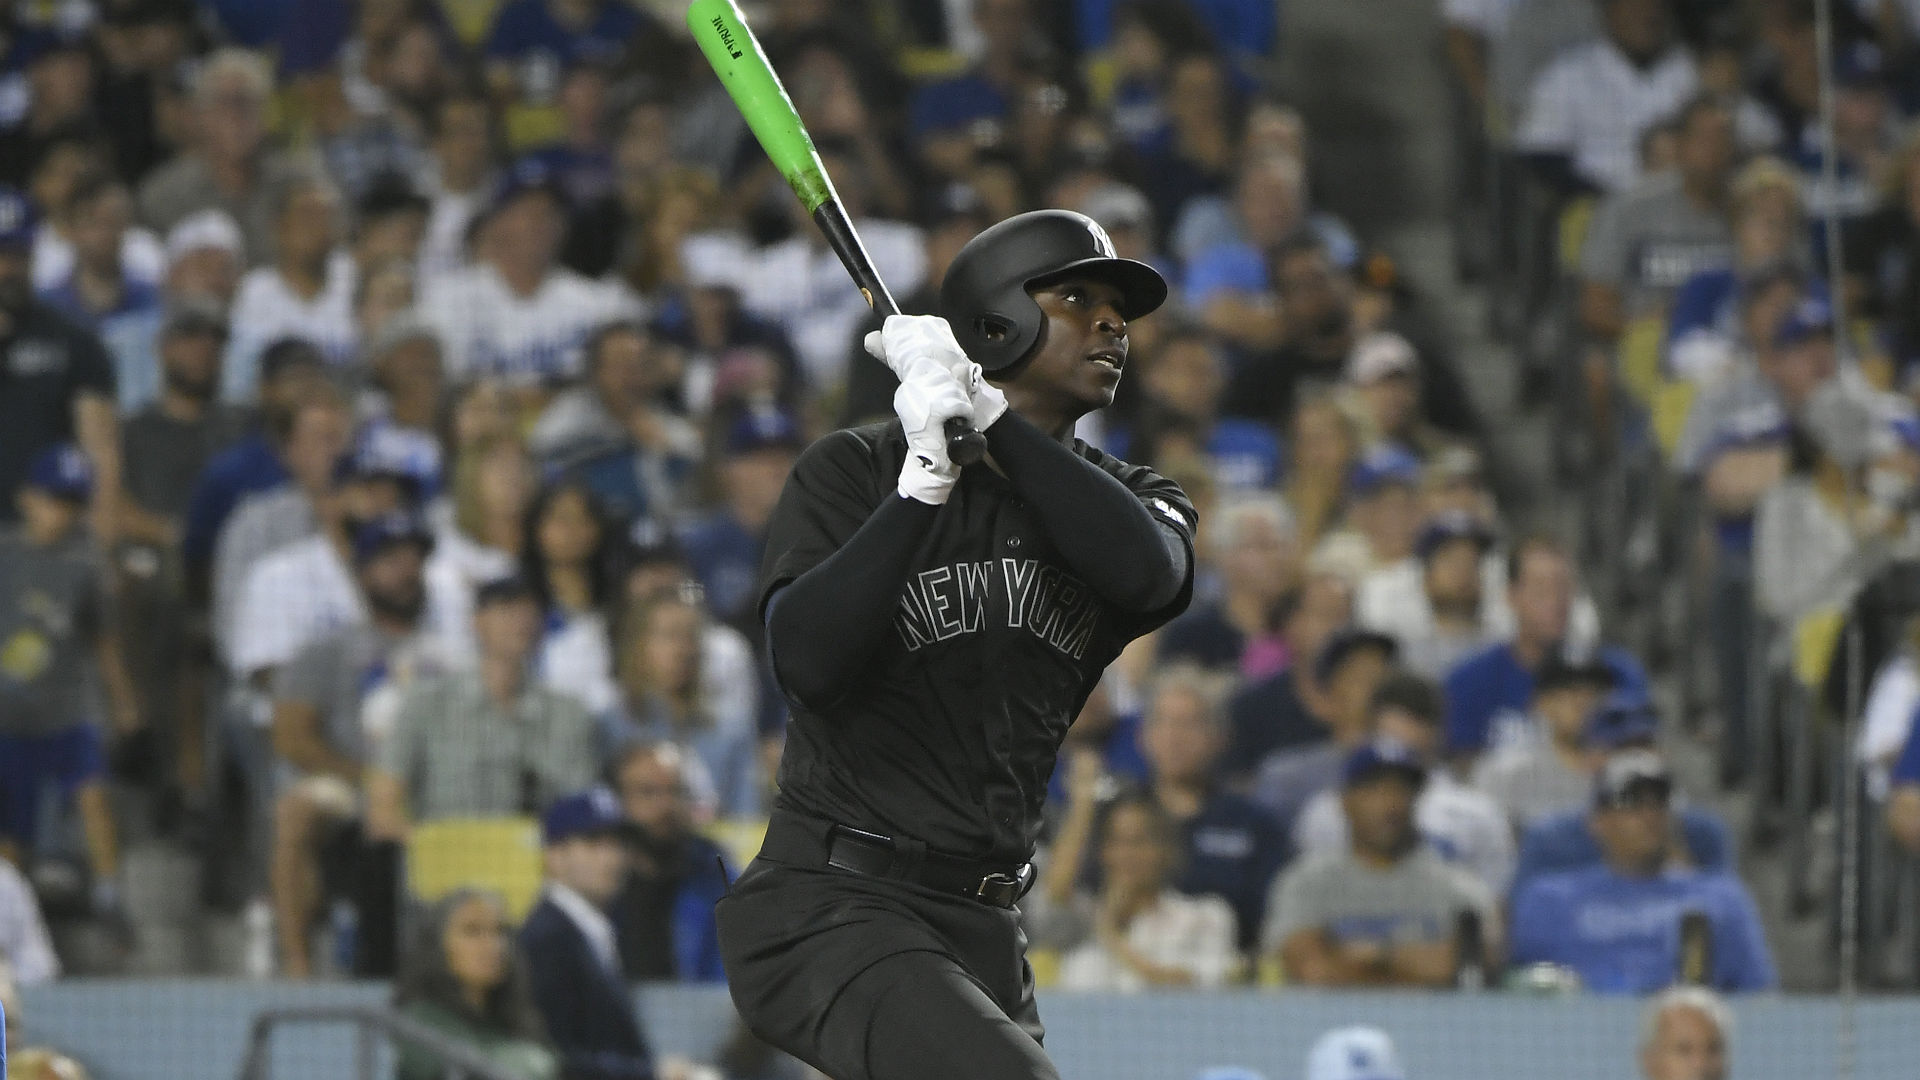 Gregorius remained in the game after being hit by a Clayton Kershaw pitch, but was lifted for a pinch hitter two innings later.